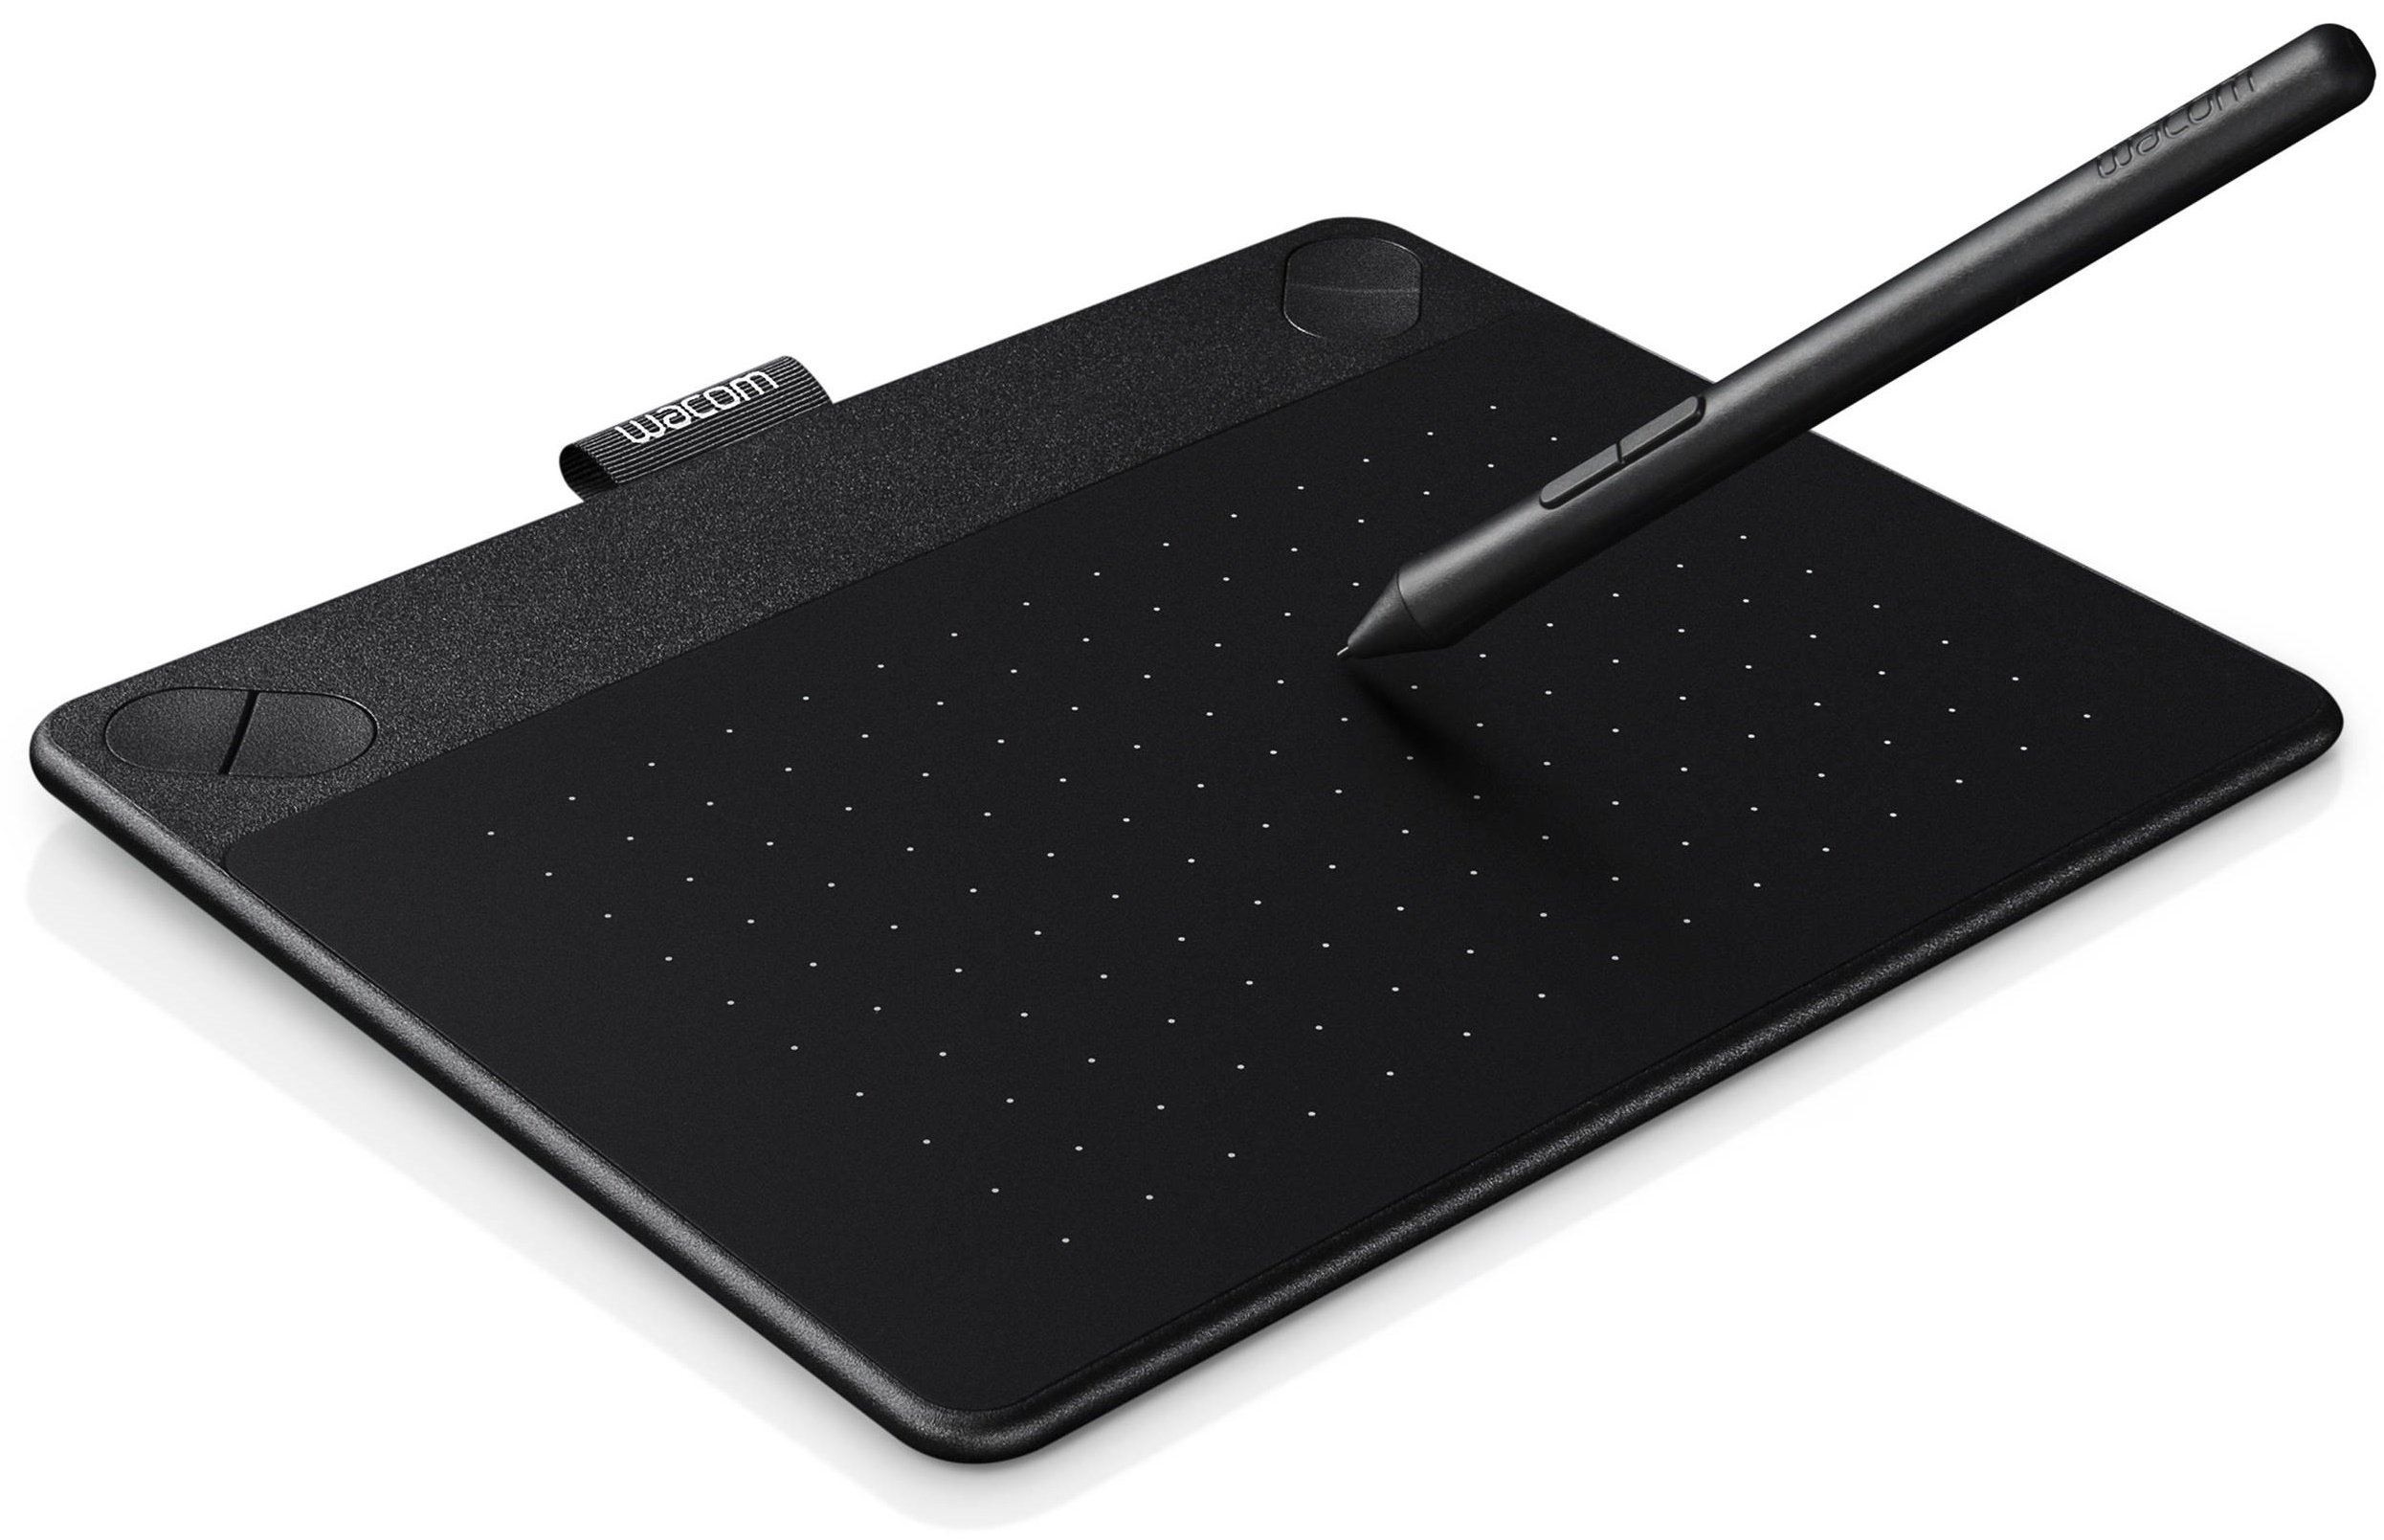 WACOM Intuos Photo Black Pen & Touch S